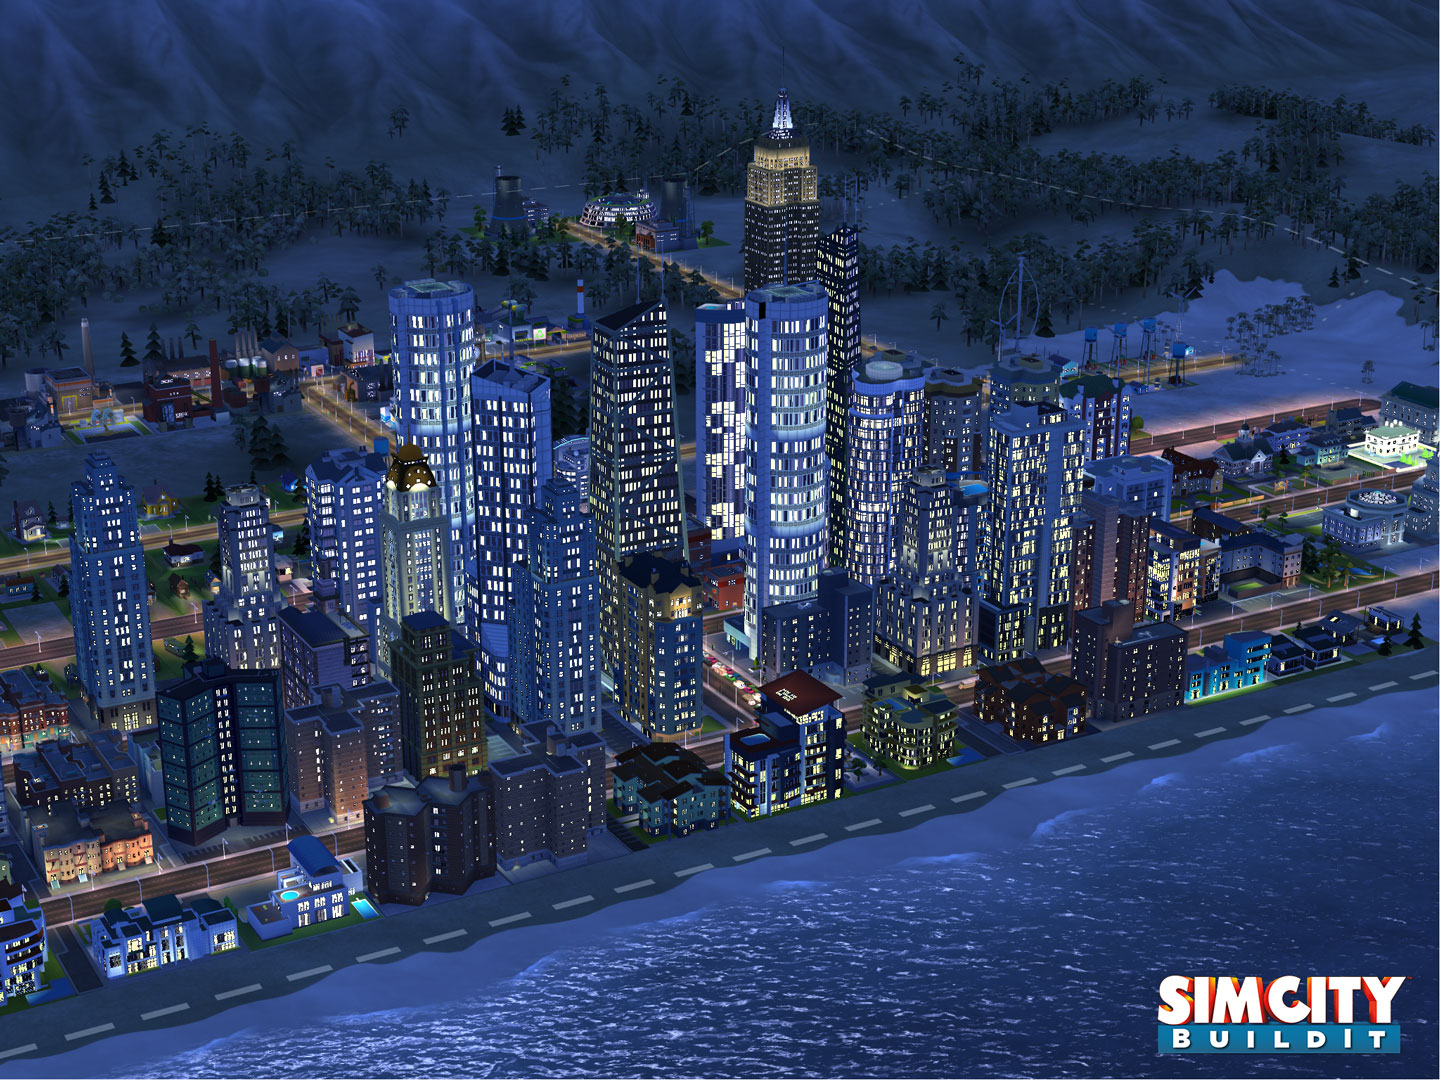 SimCity BuildIt (captura de pantalla 002 del iPad)